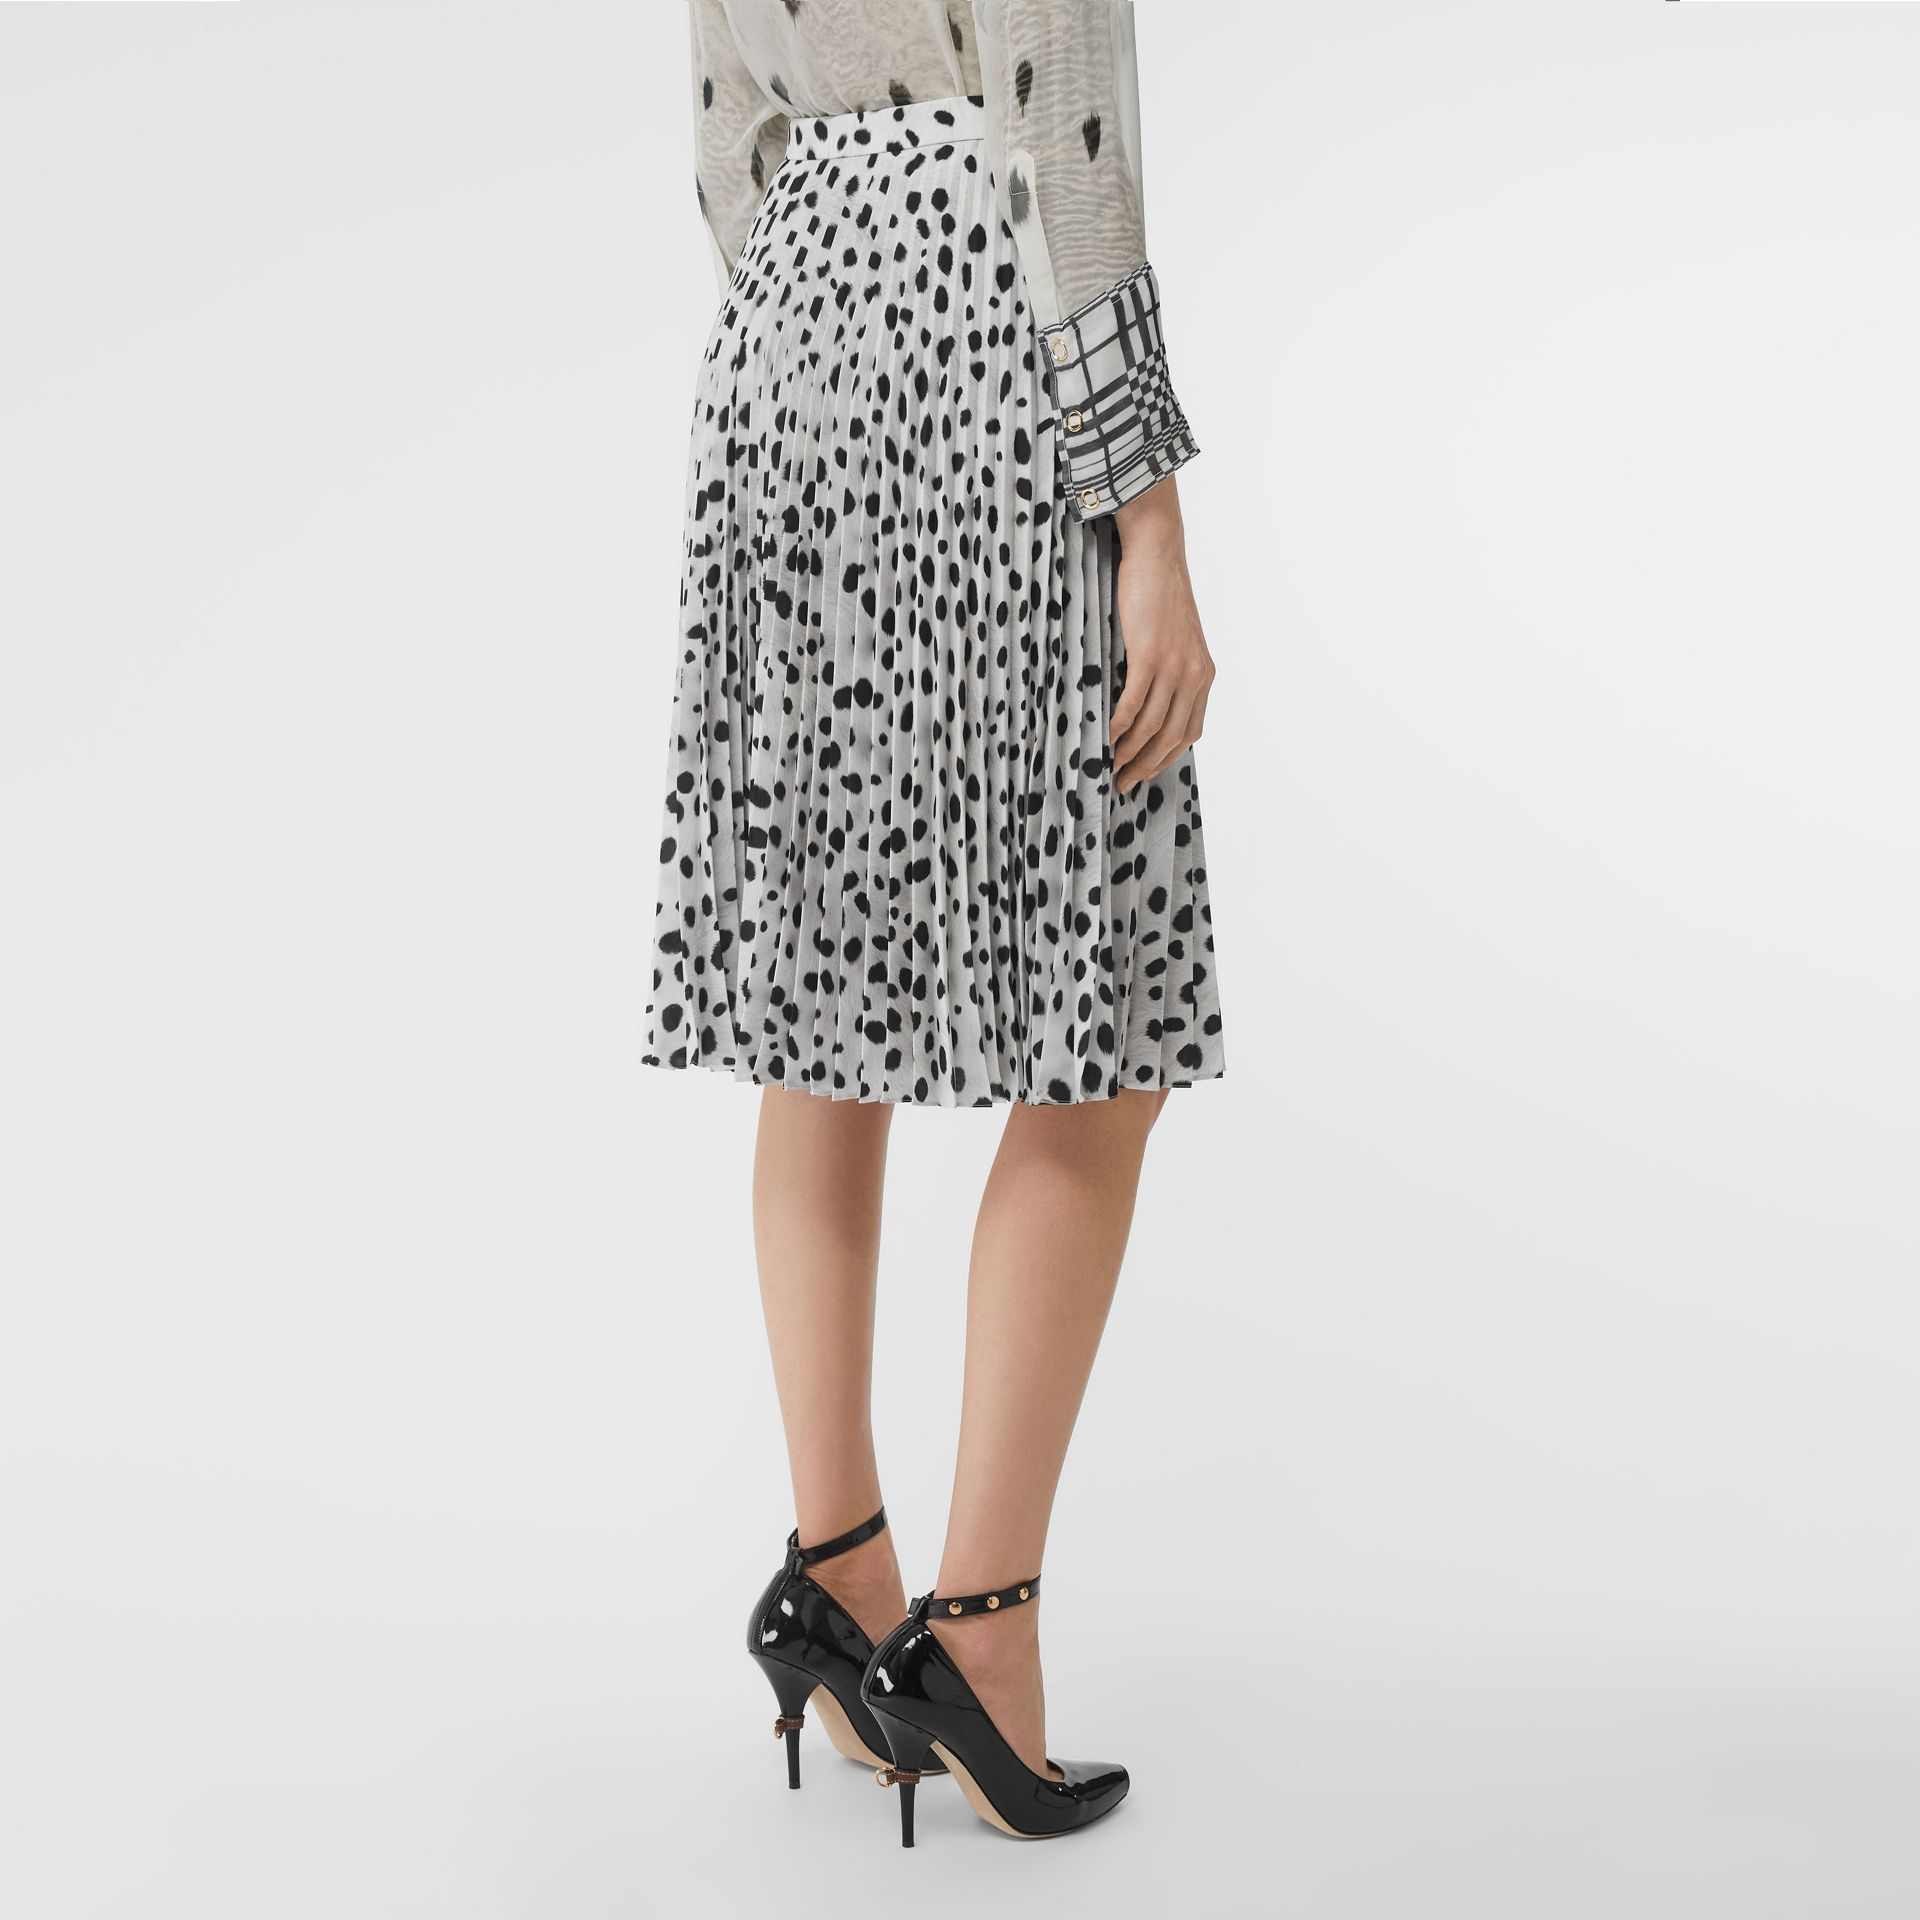 Dalmatian Print Crepe Pleated Skirt in Black/white - Women | Burberry - gallery image 2